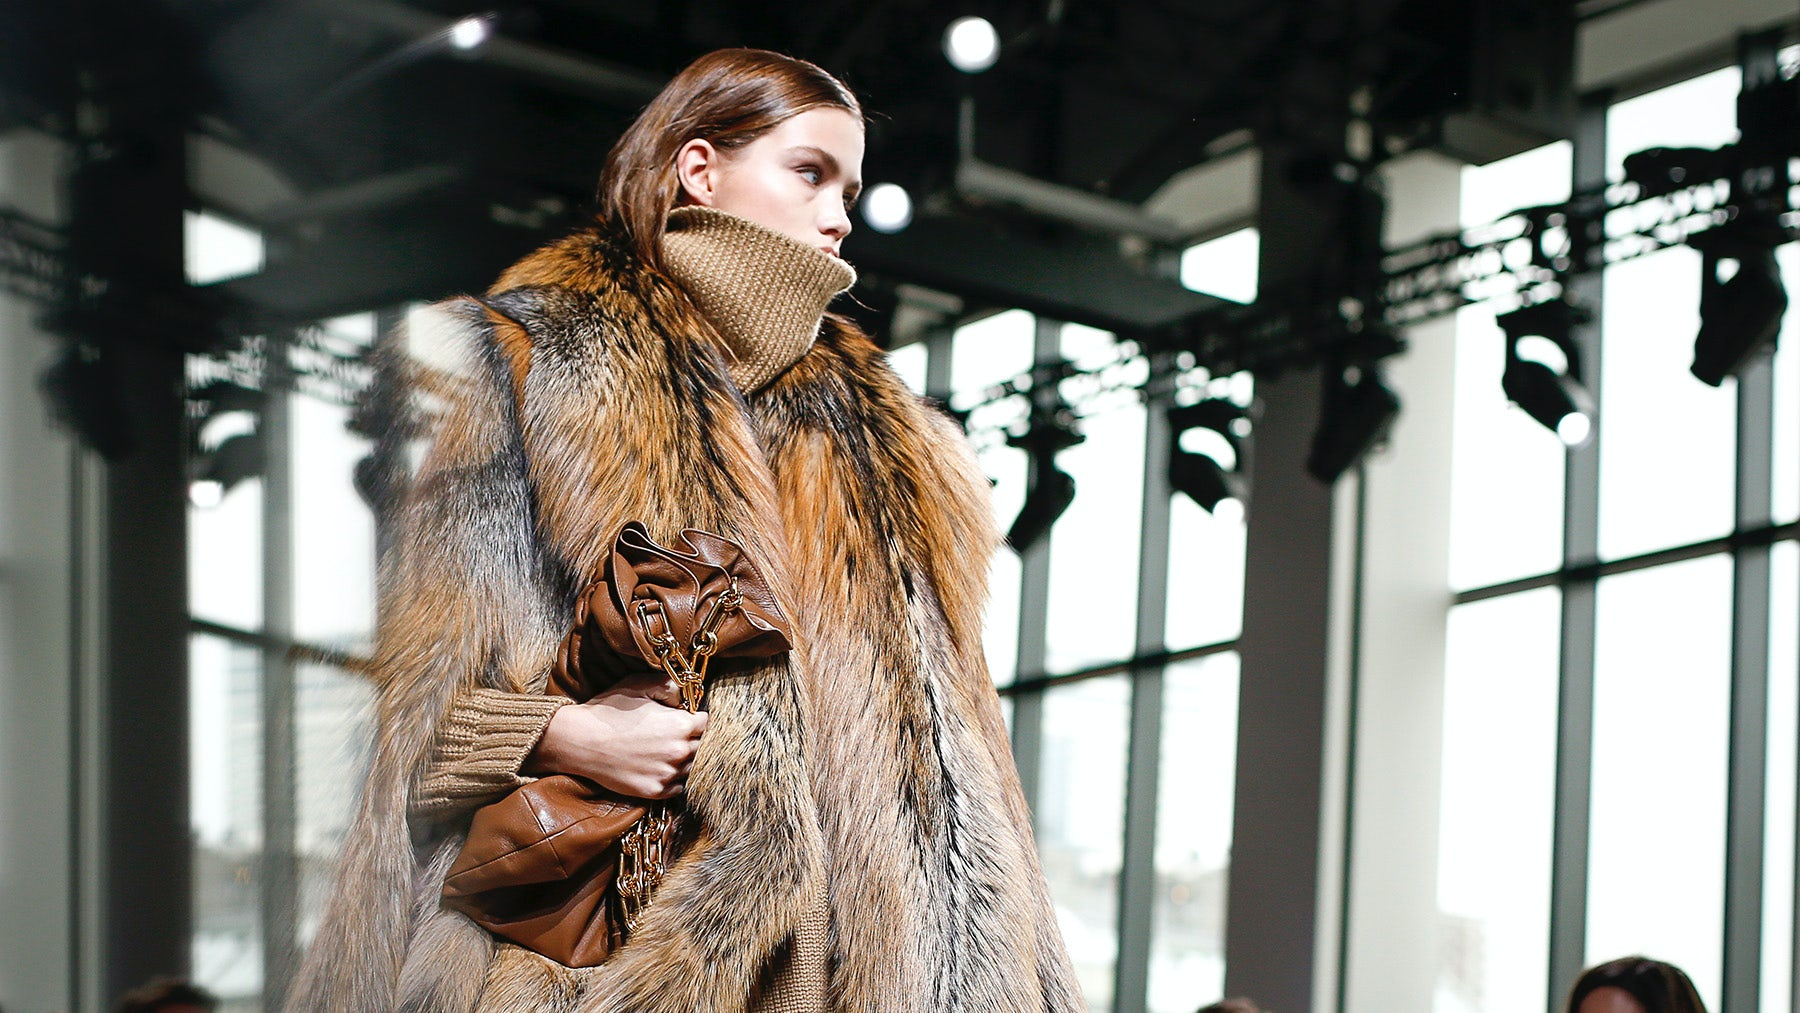 Michael Kors Commits to Going Fur-Free in 2018